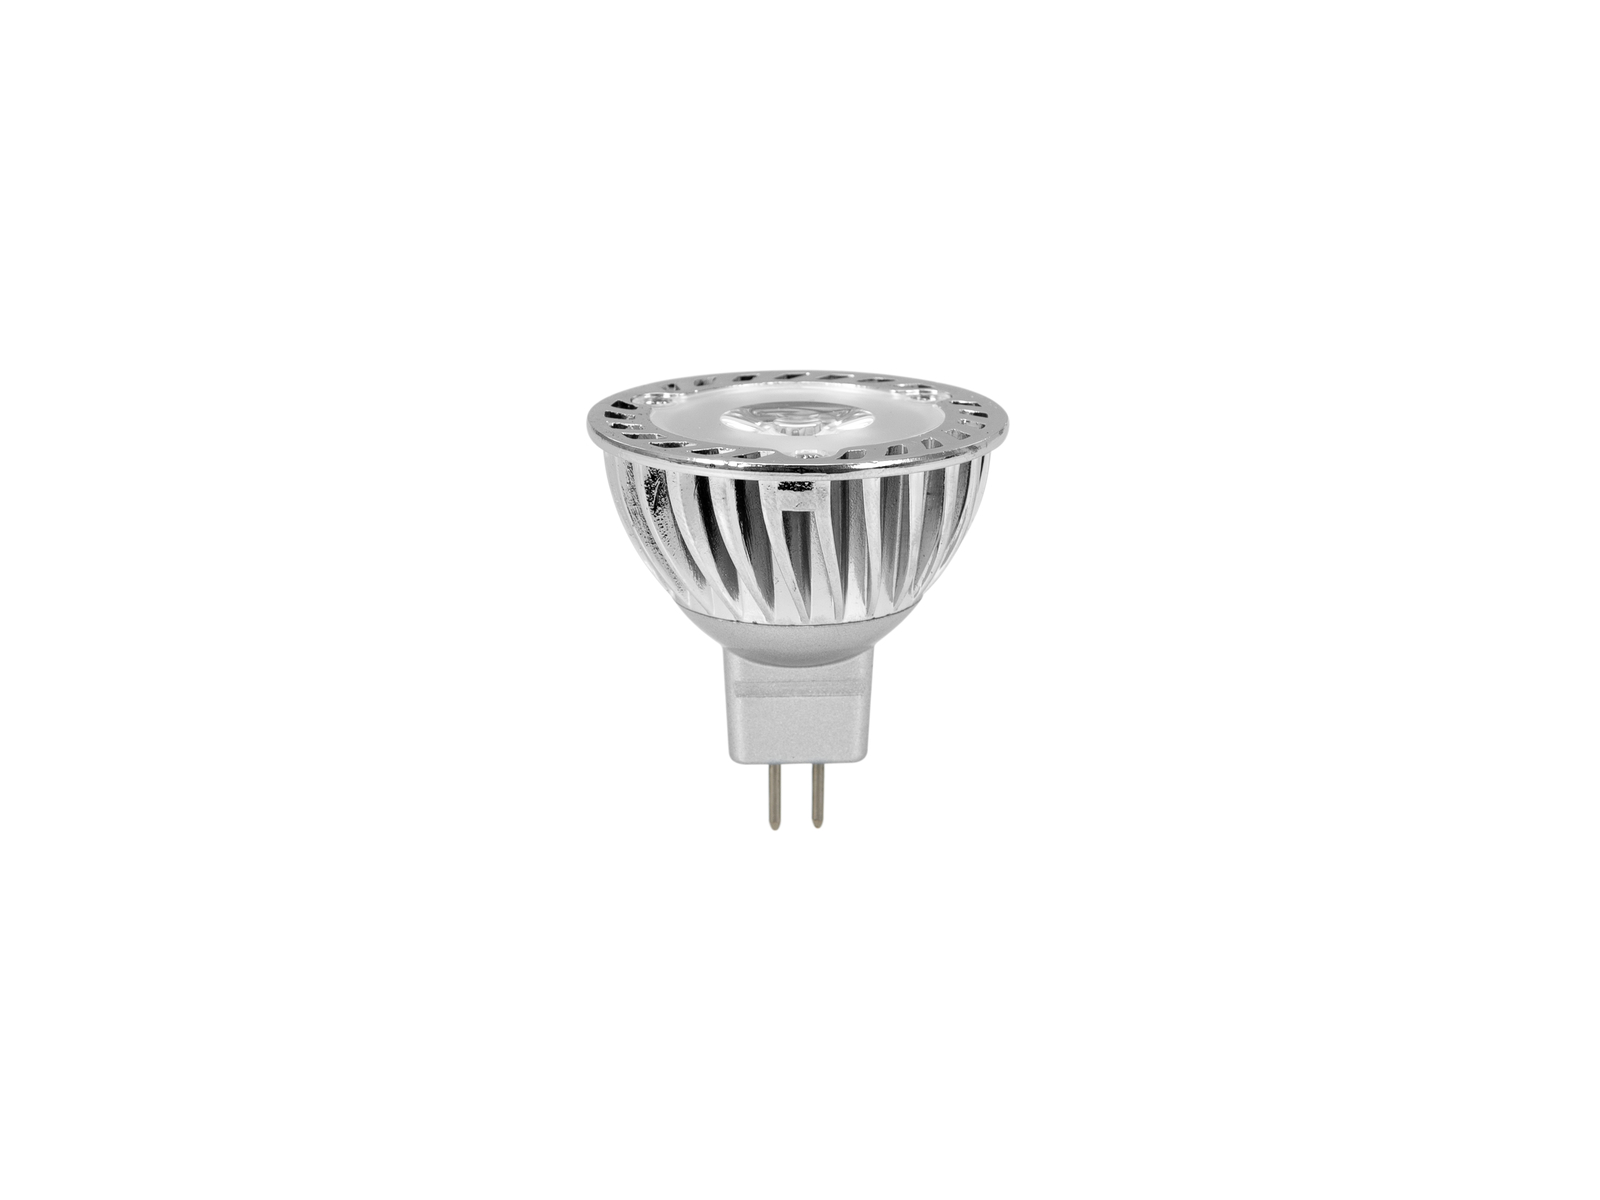 OMNILUX MR-16 12V GU-5.3 LED 3